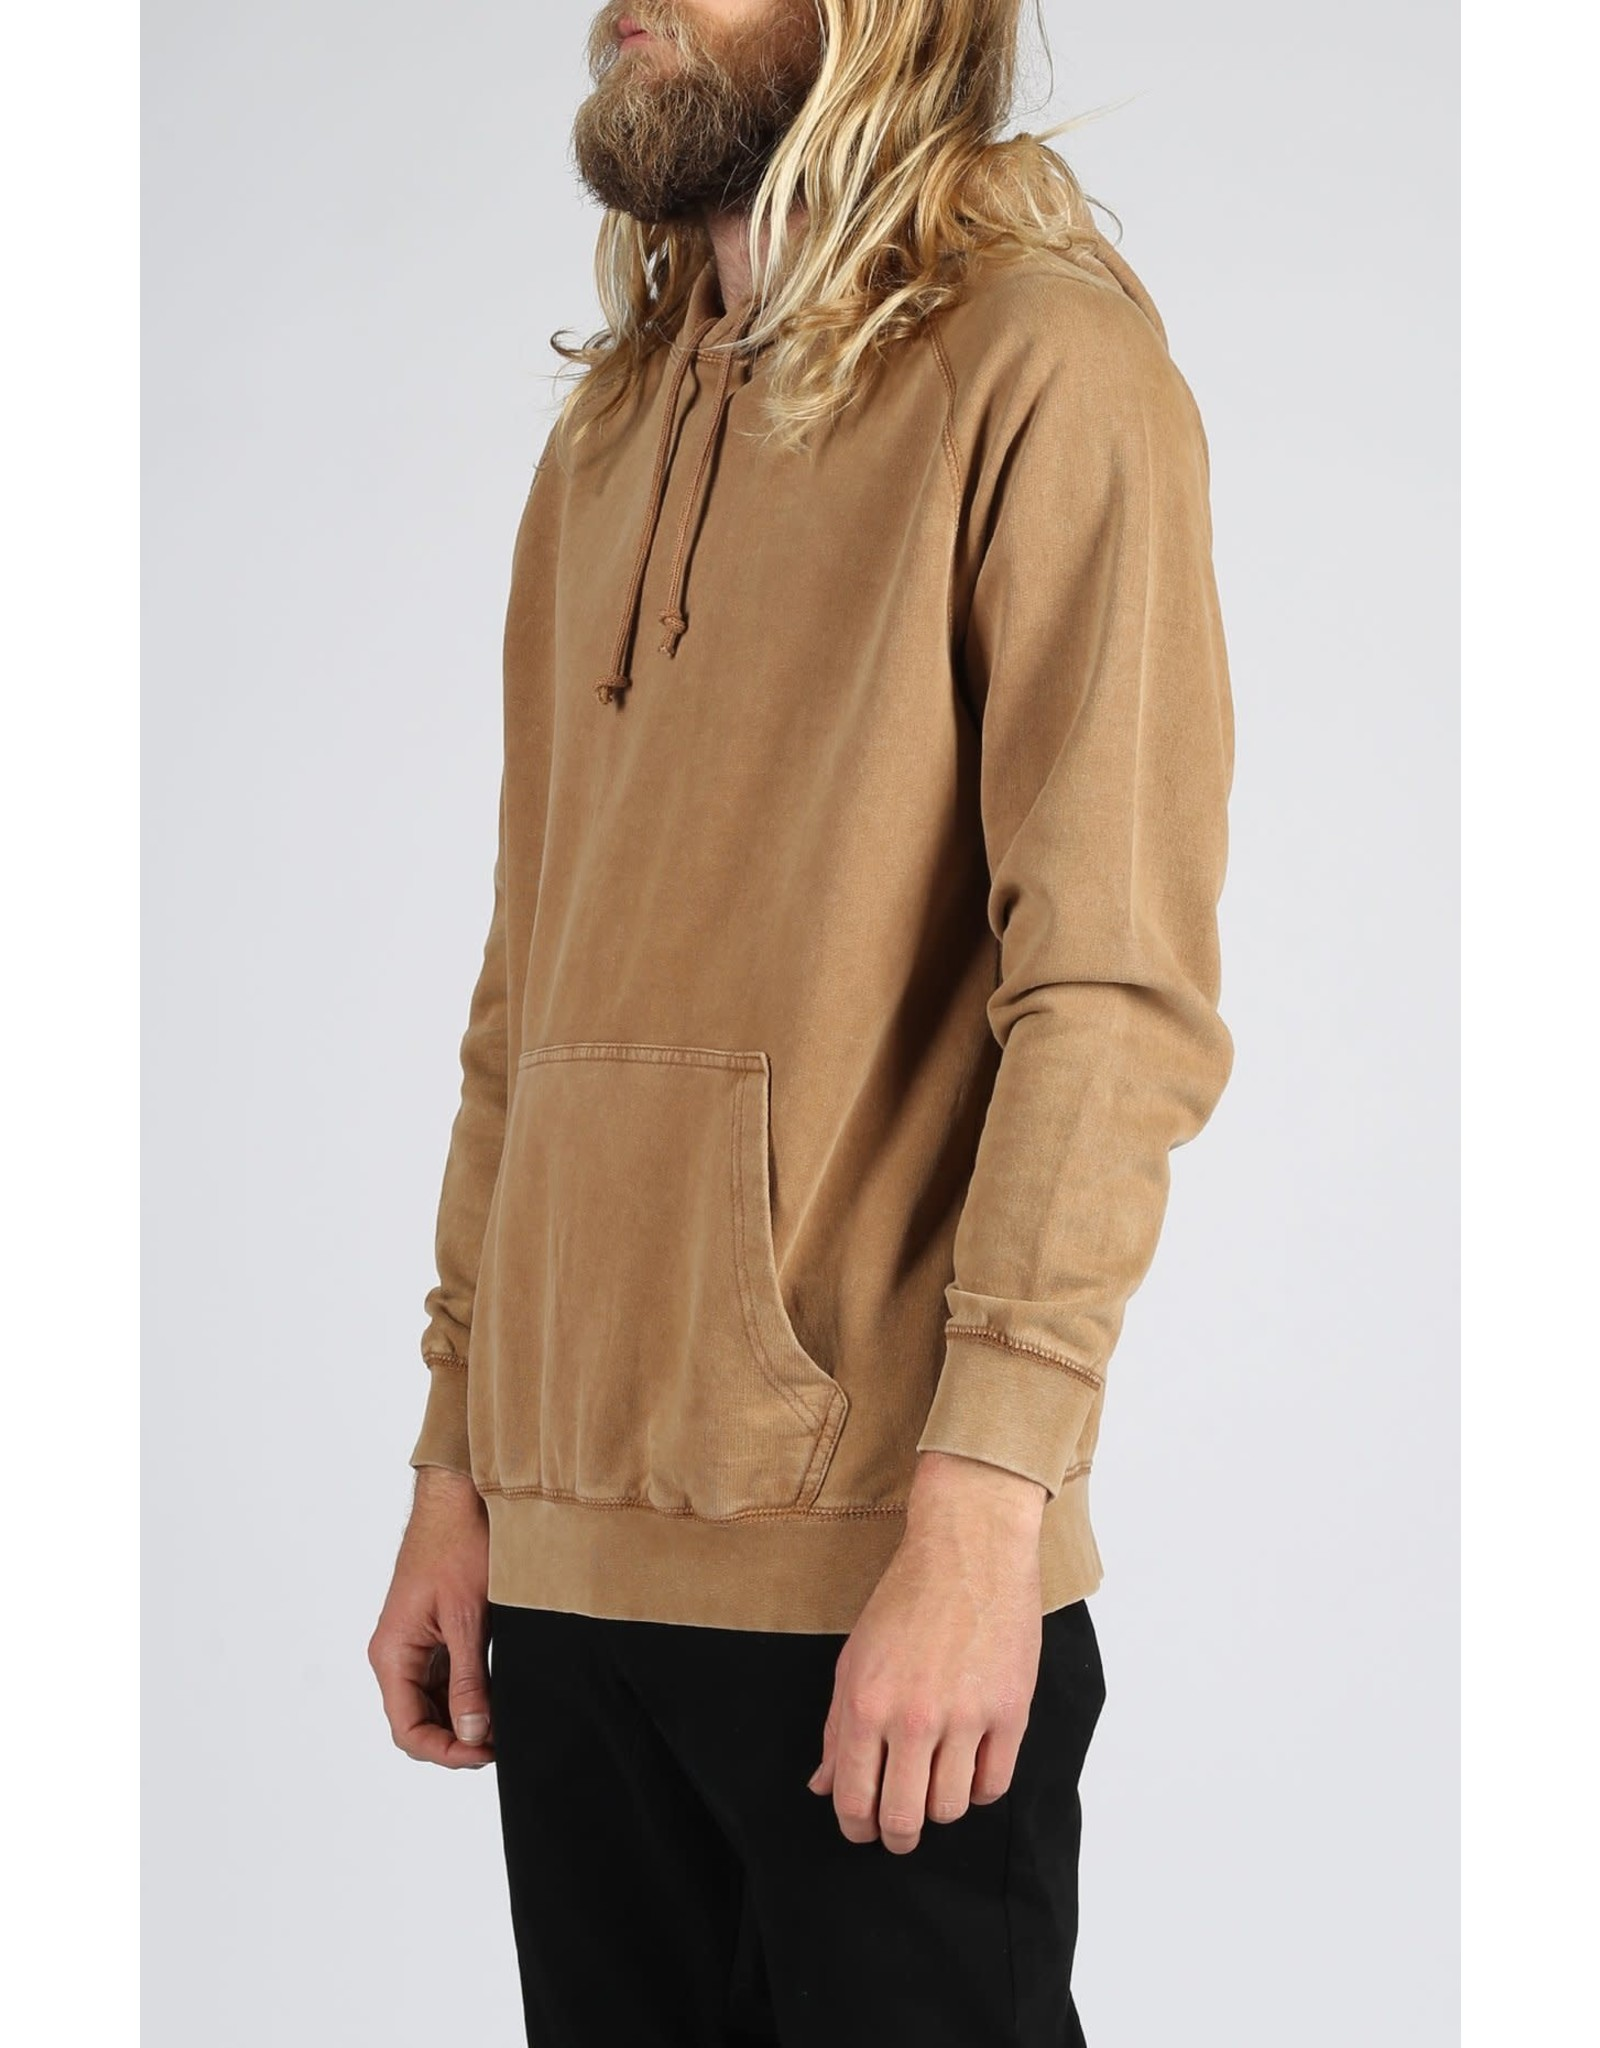 LRA - Unisex Vintage Wash Pop Over Hoodie